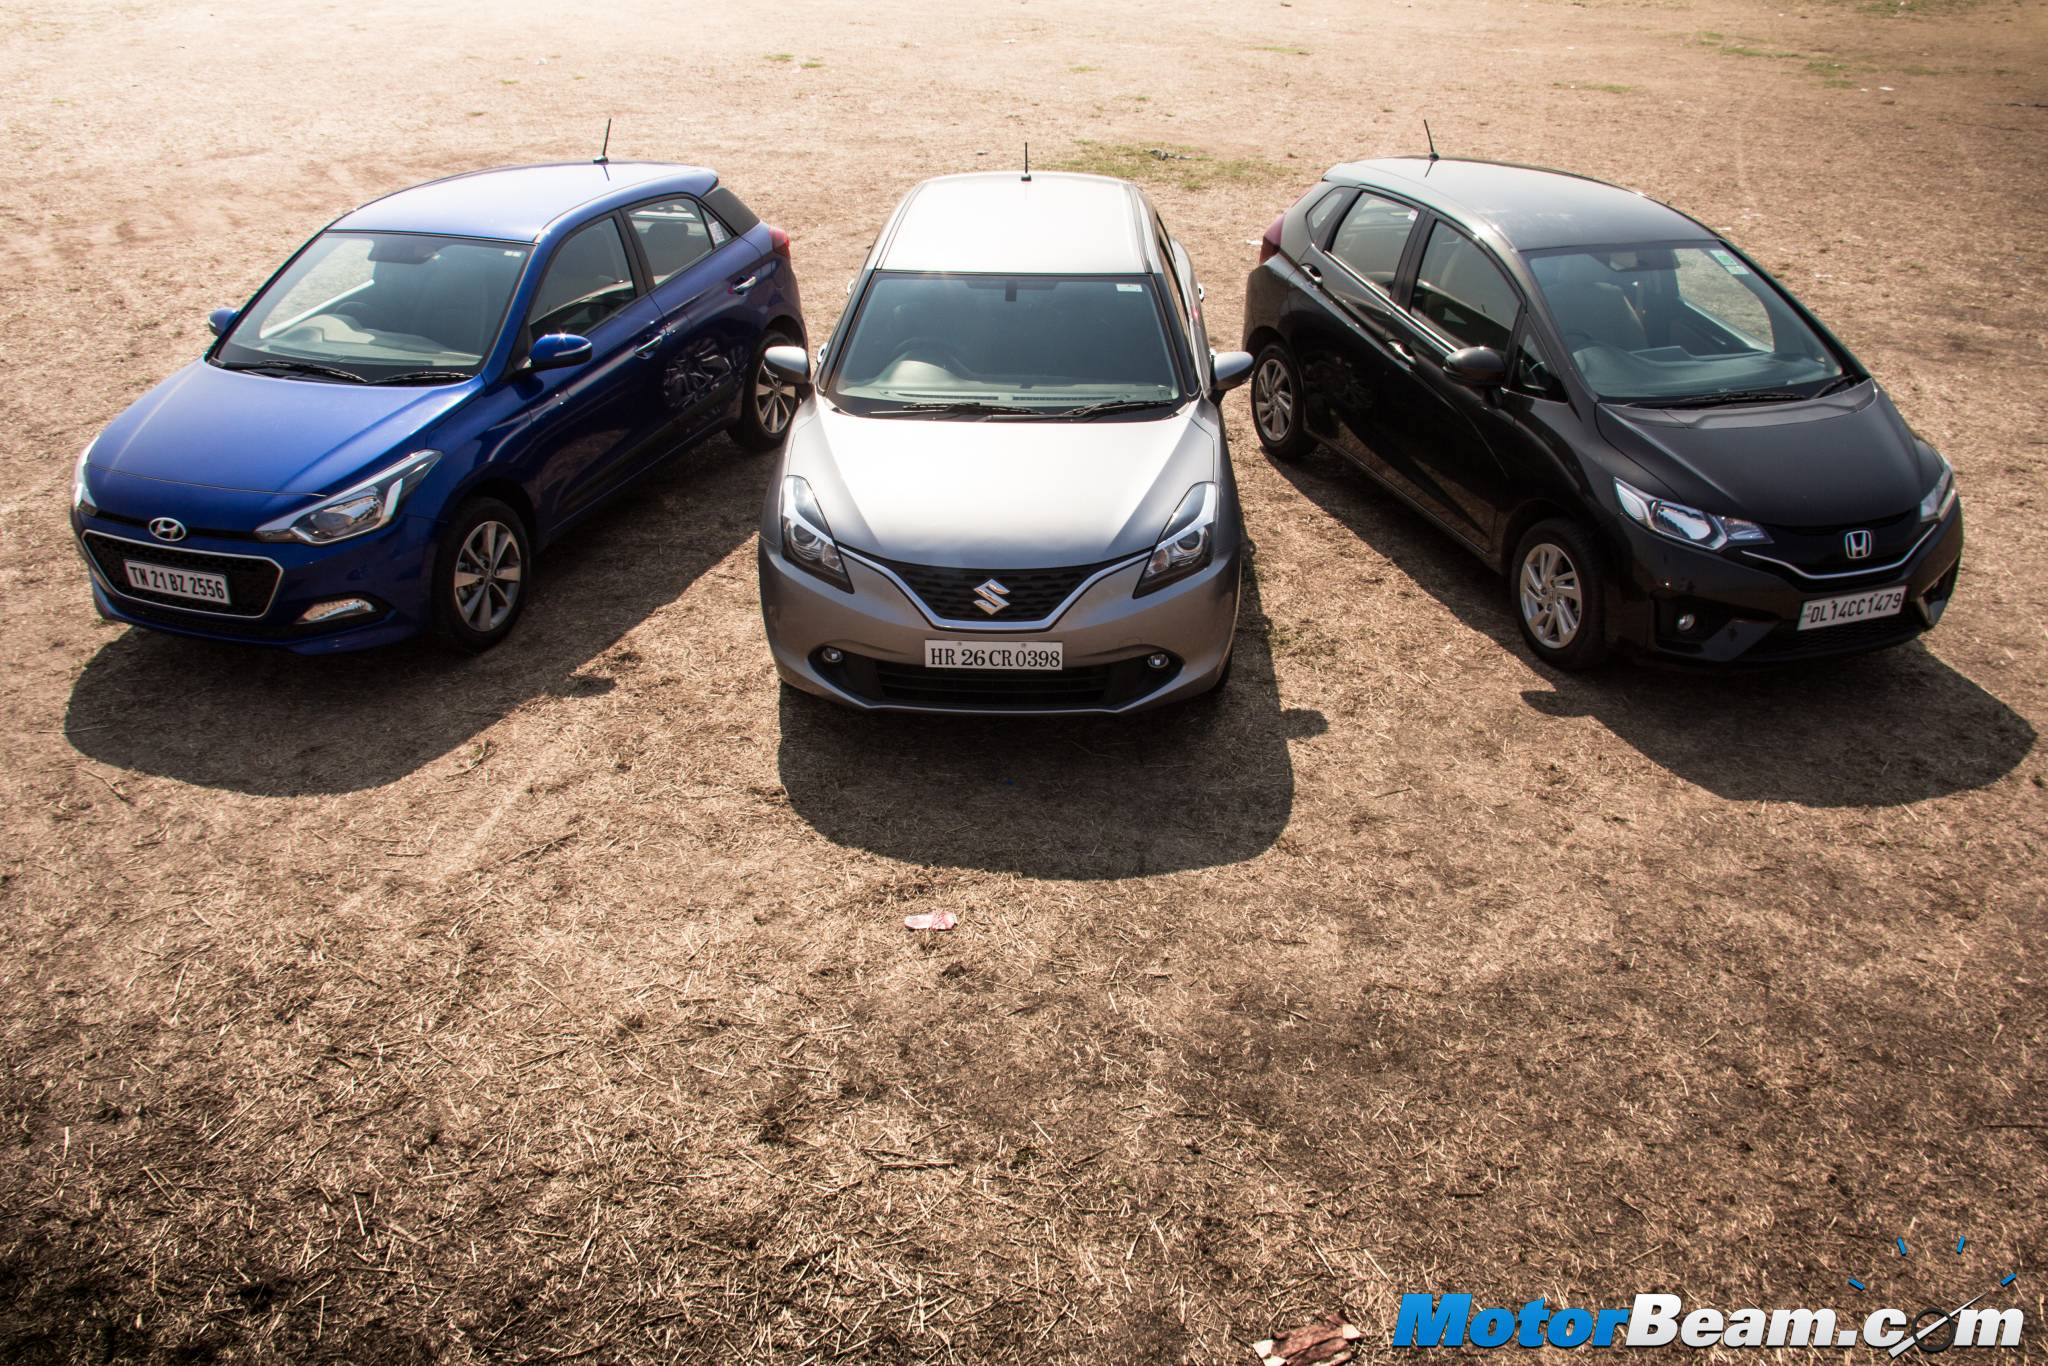 Hyundai Elite i20 vs Maruti Baleno vs Honda Jazz